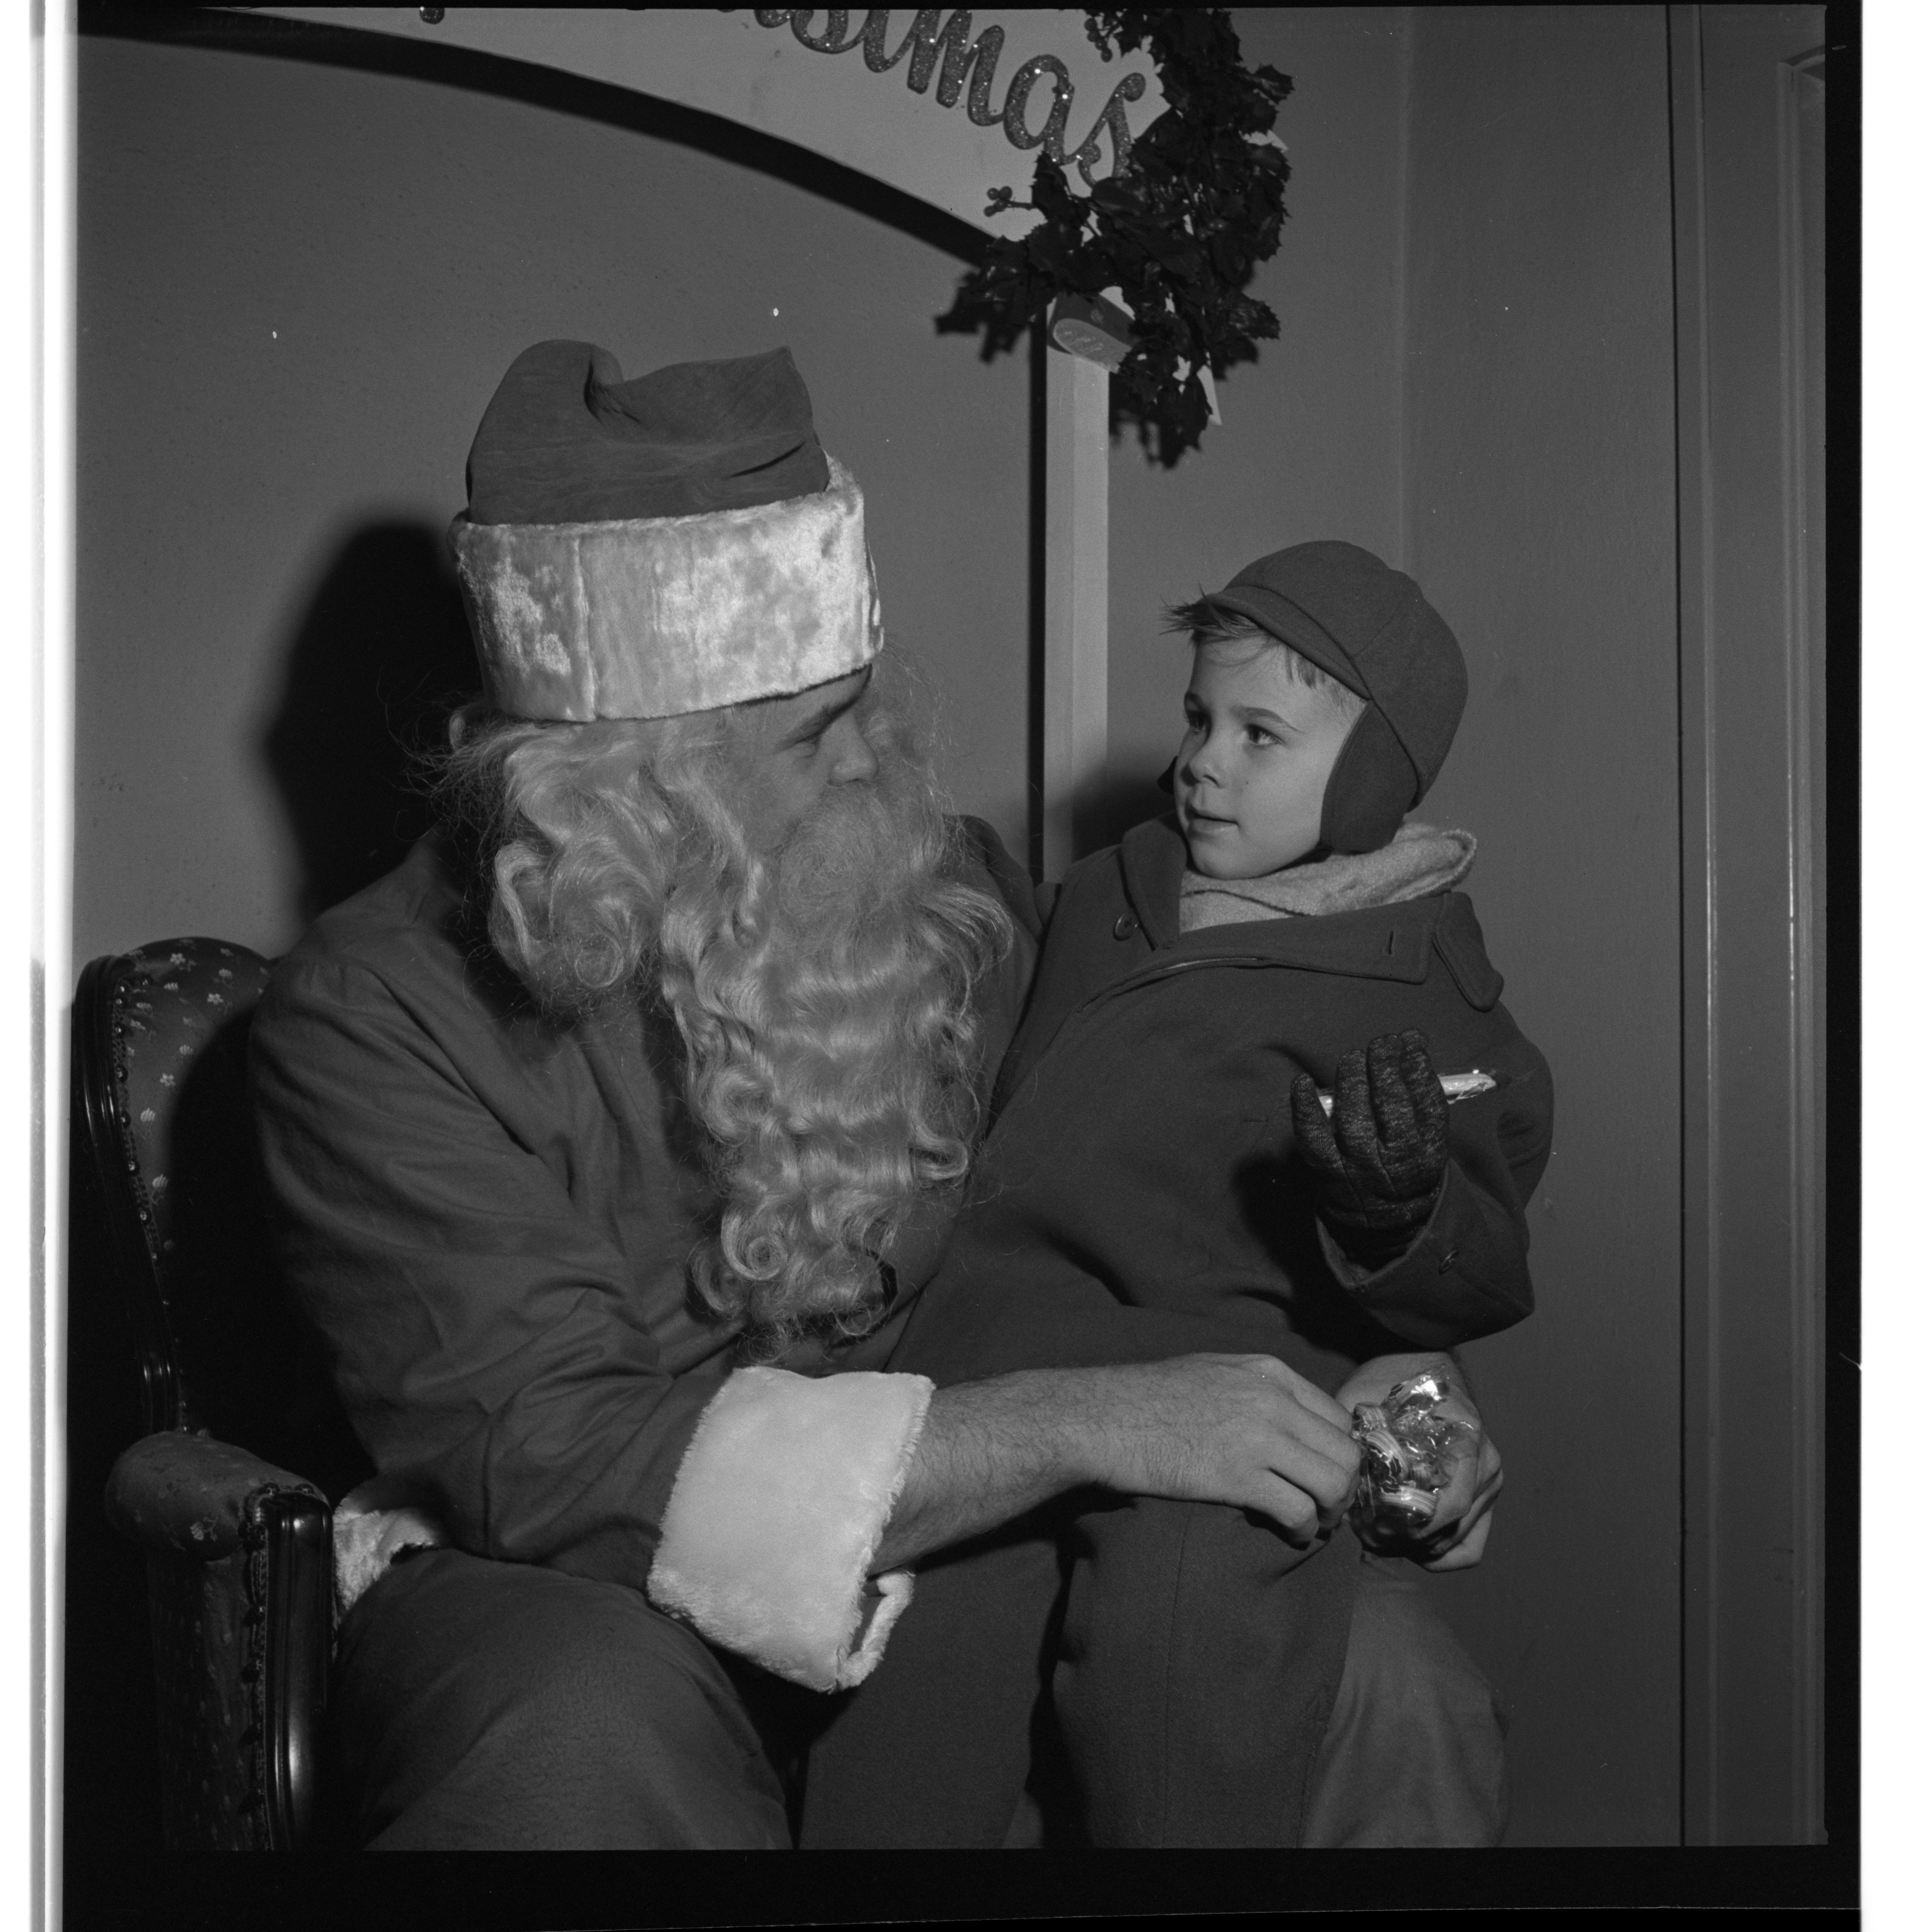 """Pepper"" Hazely Talks To Santa Claus, December 1950 image"